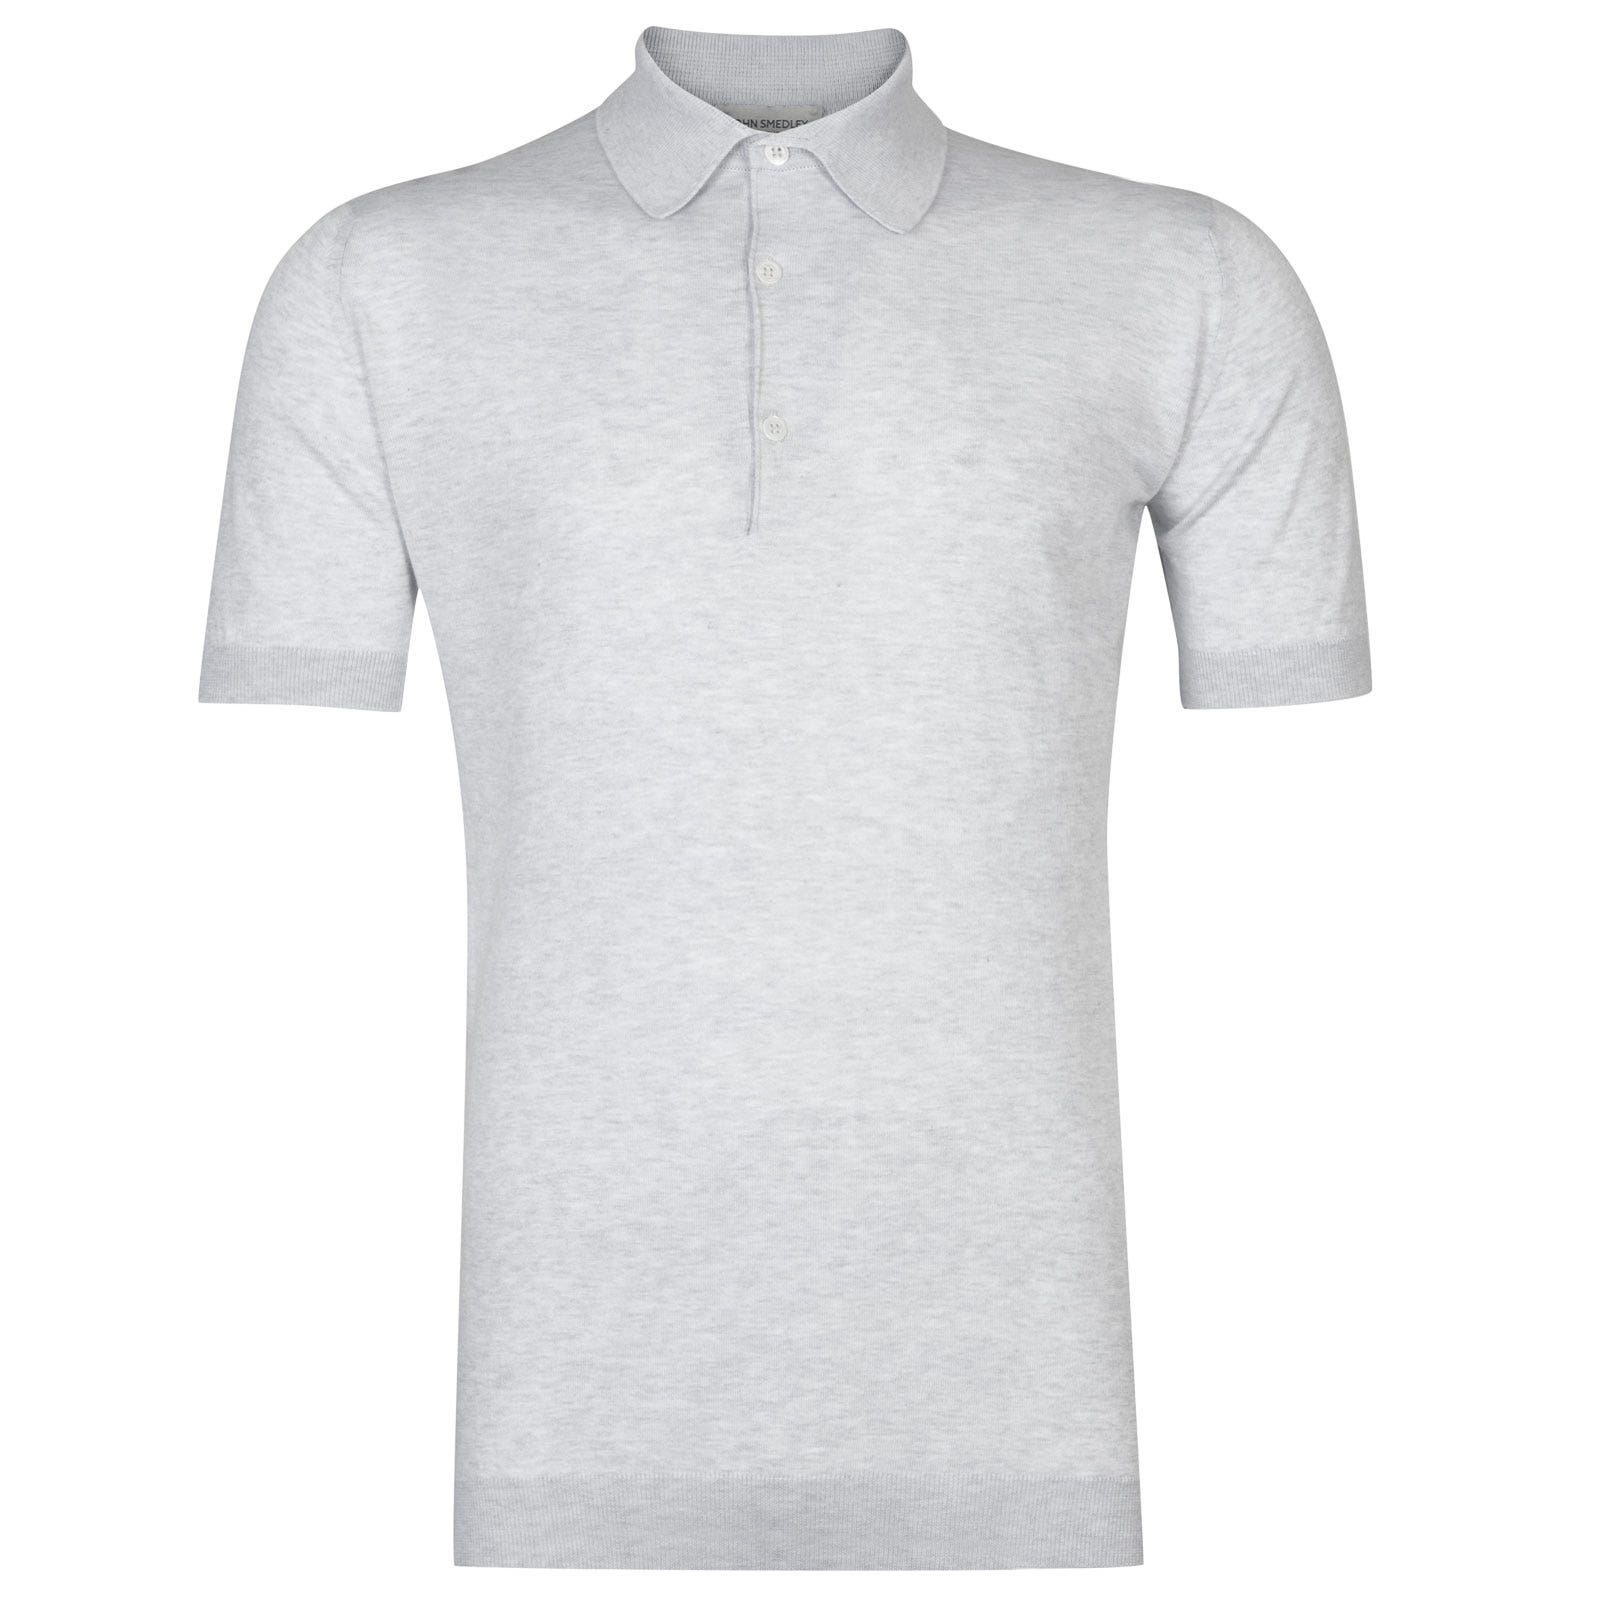 John Smedley adrian Sea Island Cotton Shirt in Feather Grey-XXL